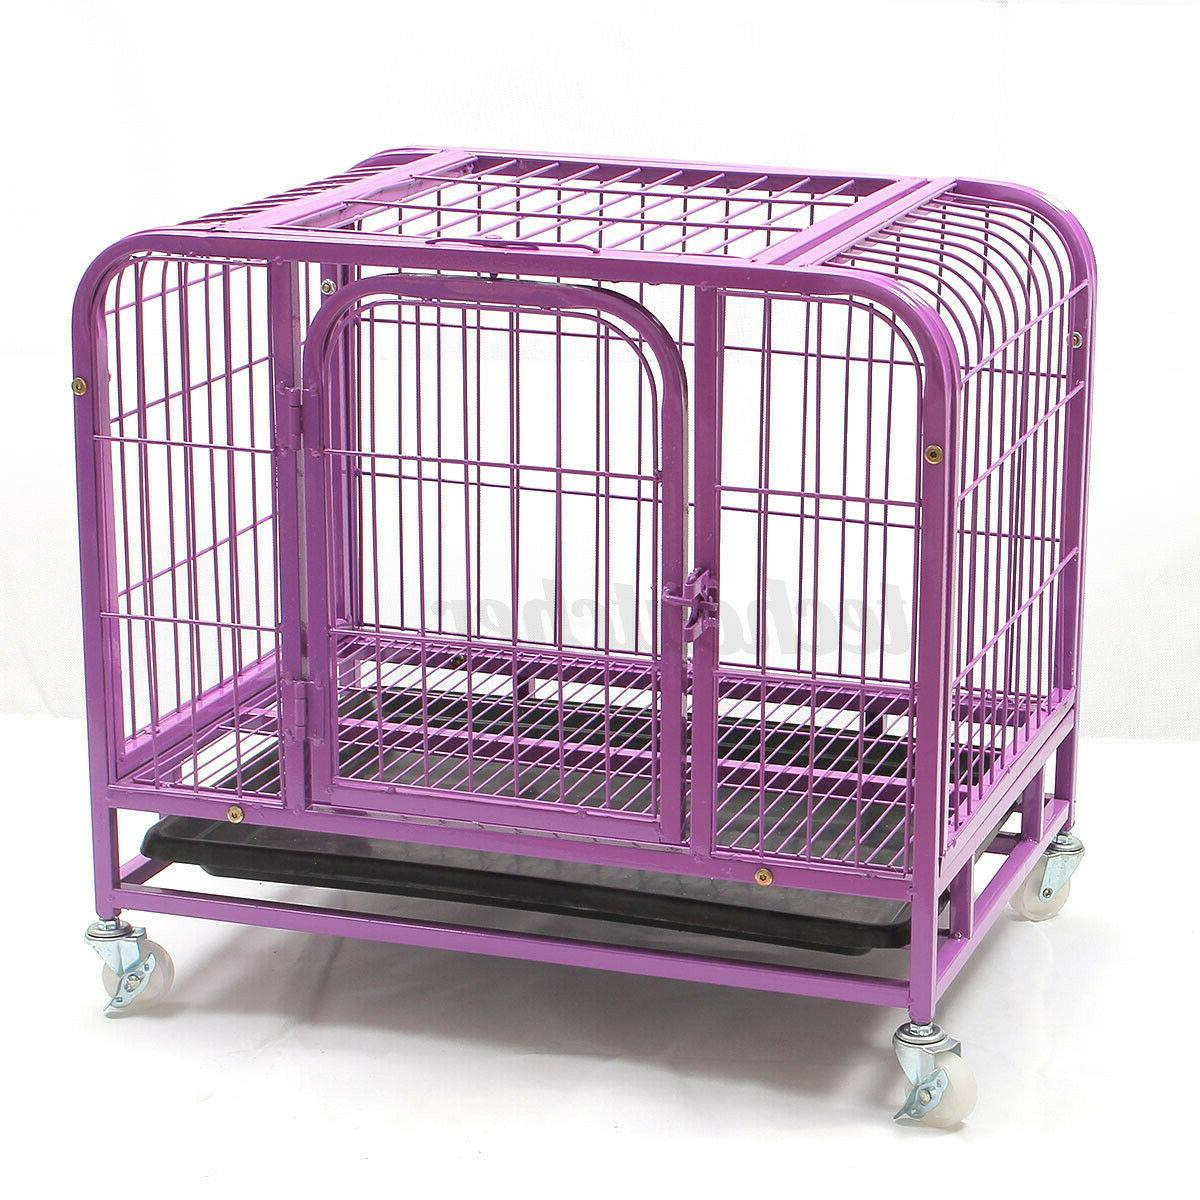 31'' Small Dog Crate 2 Animal Cat Pet Cage Puppy Kennel House w/